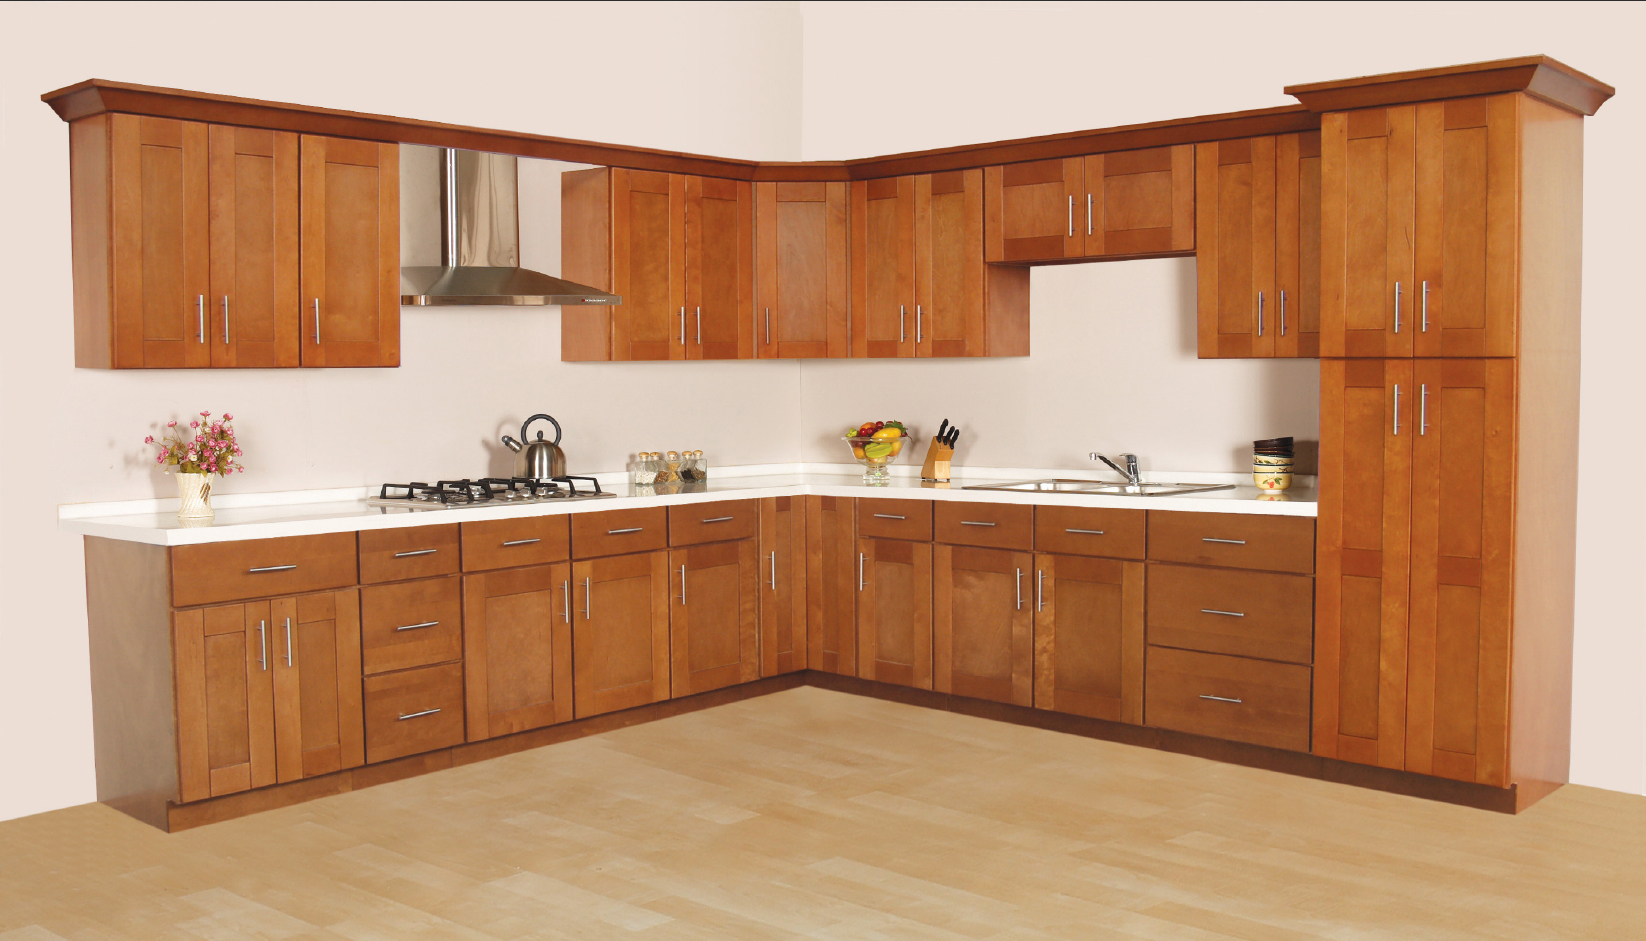 Menards kitchen cabinet price and details home and for Kitchen design cabinets